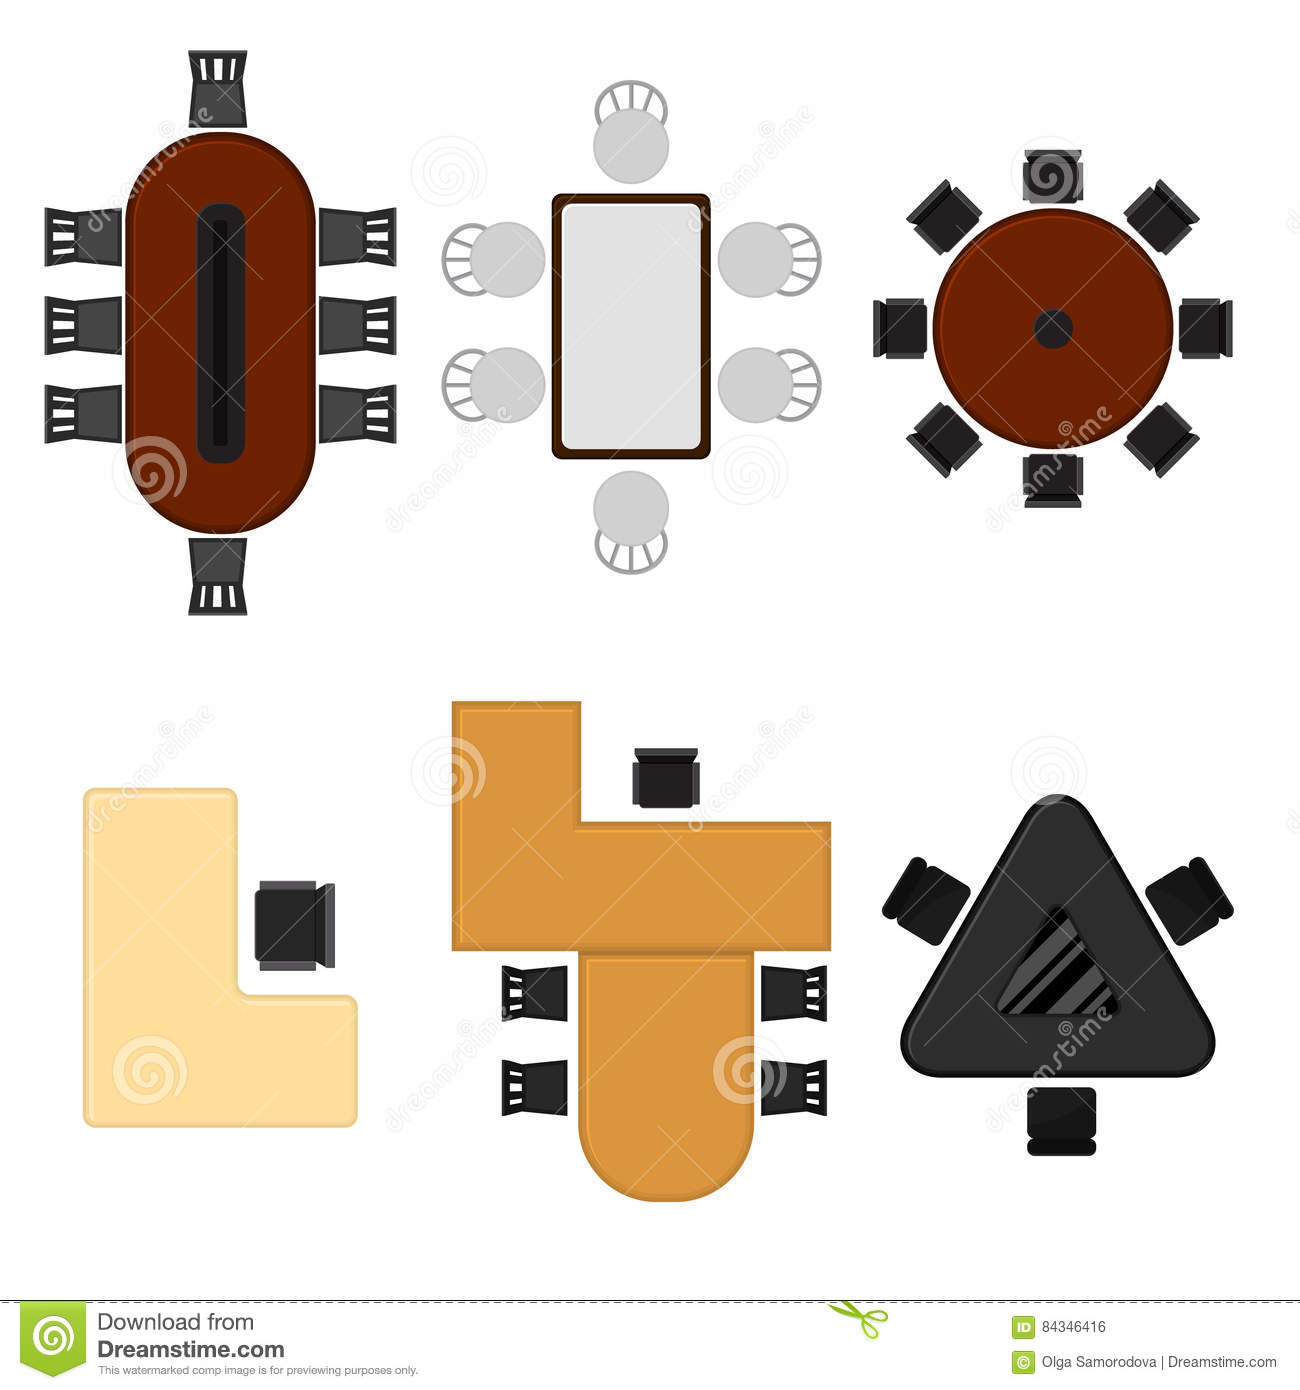 Cartoon Business Office Table Set Top View Vector Stock